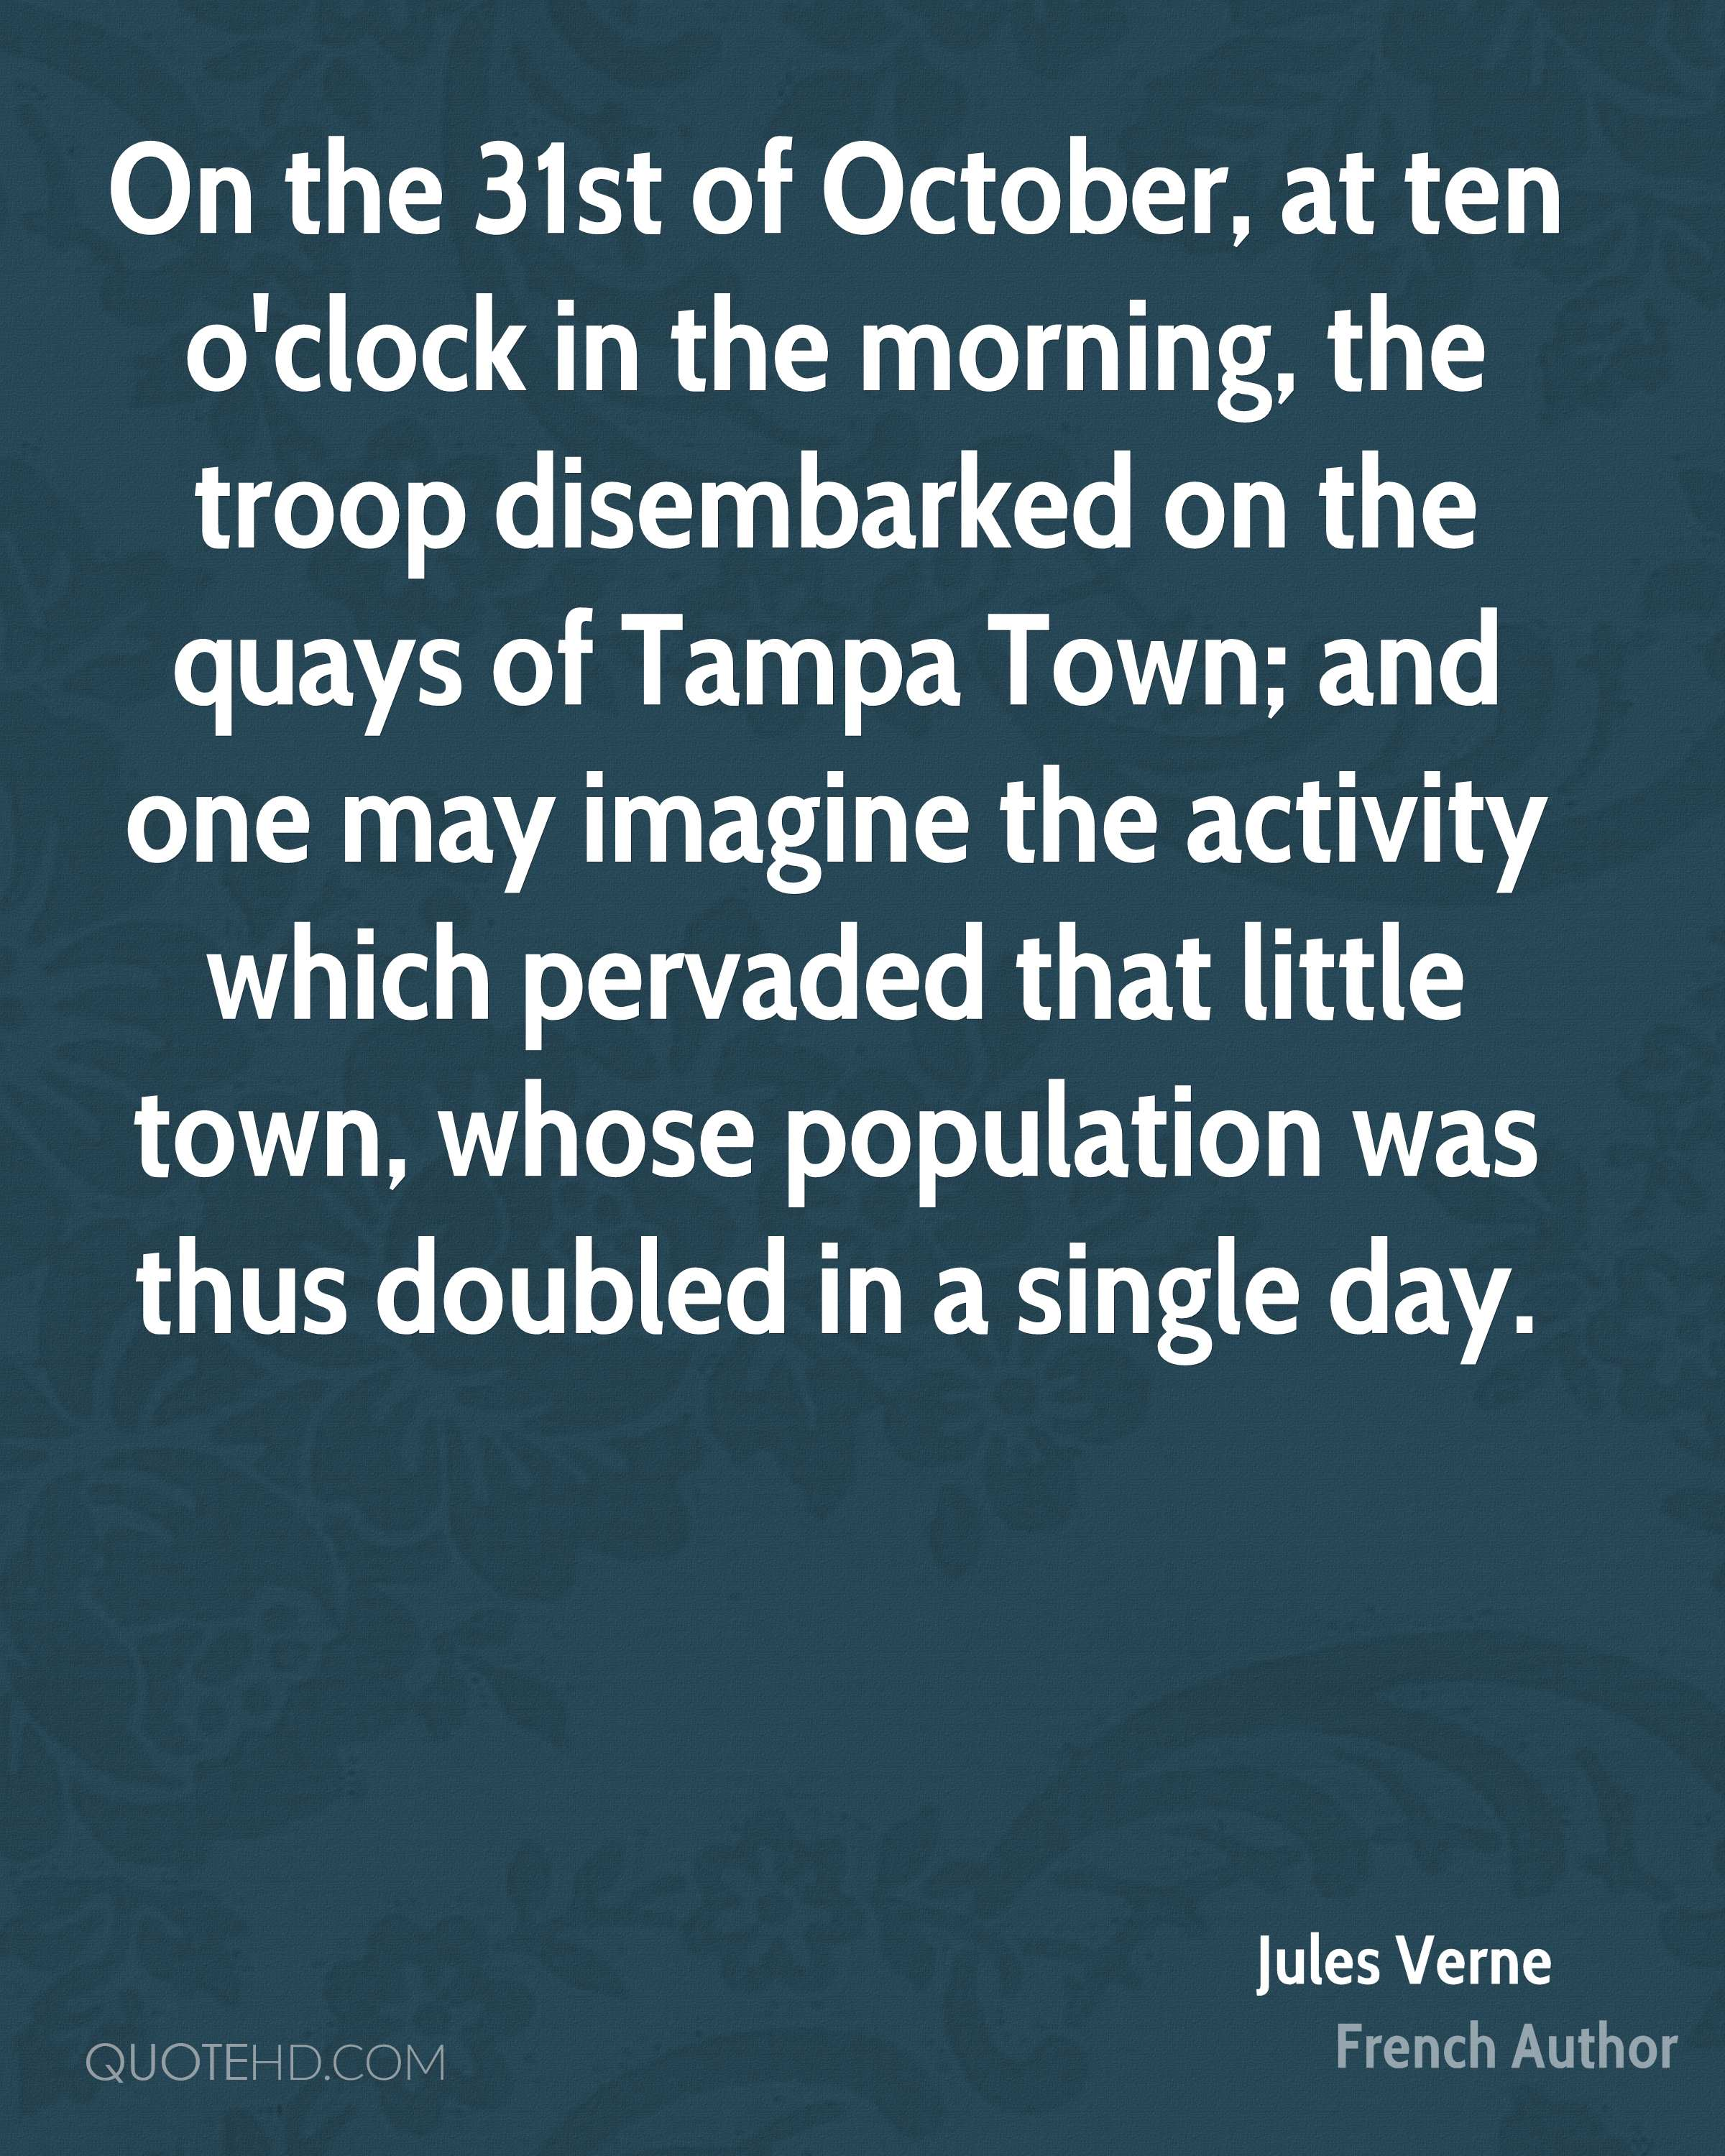 On the 31st of October, at ten o'clock in the morning, the troop disembarked on the quays of Tampa Town; and one may imagine the activity which pervaded that little town, whose population was thus doubled in a single day.